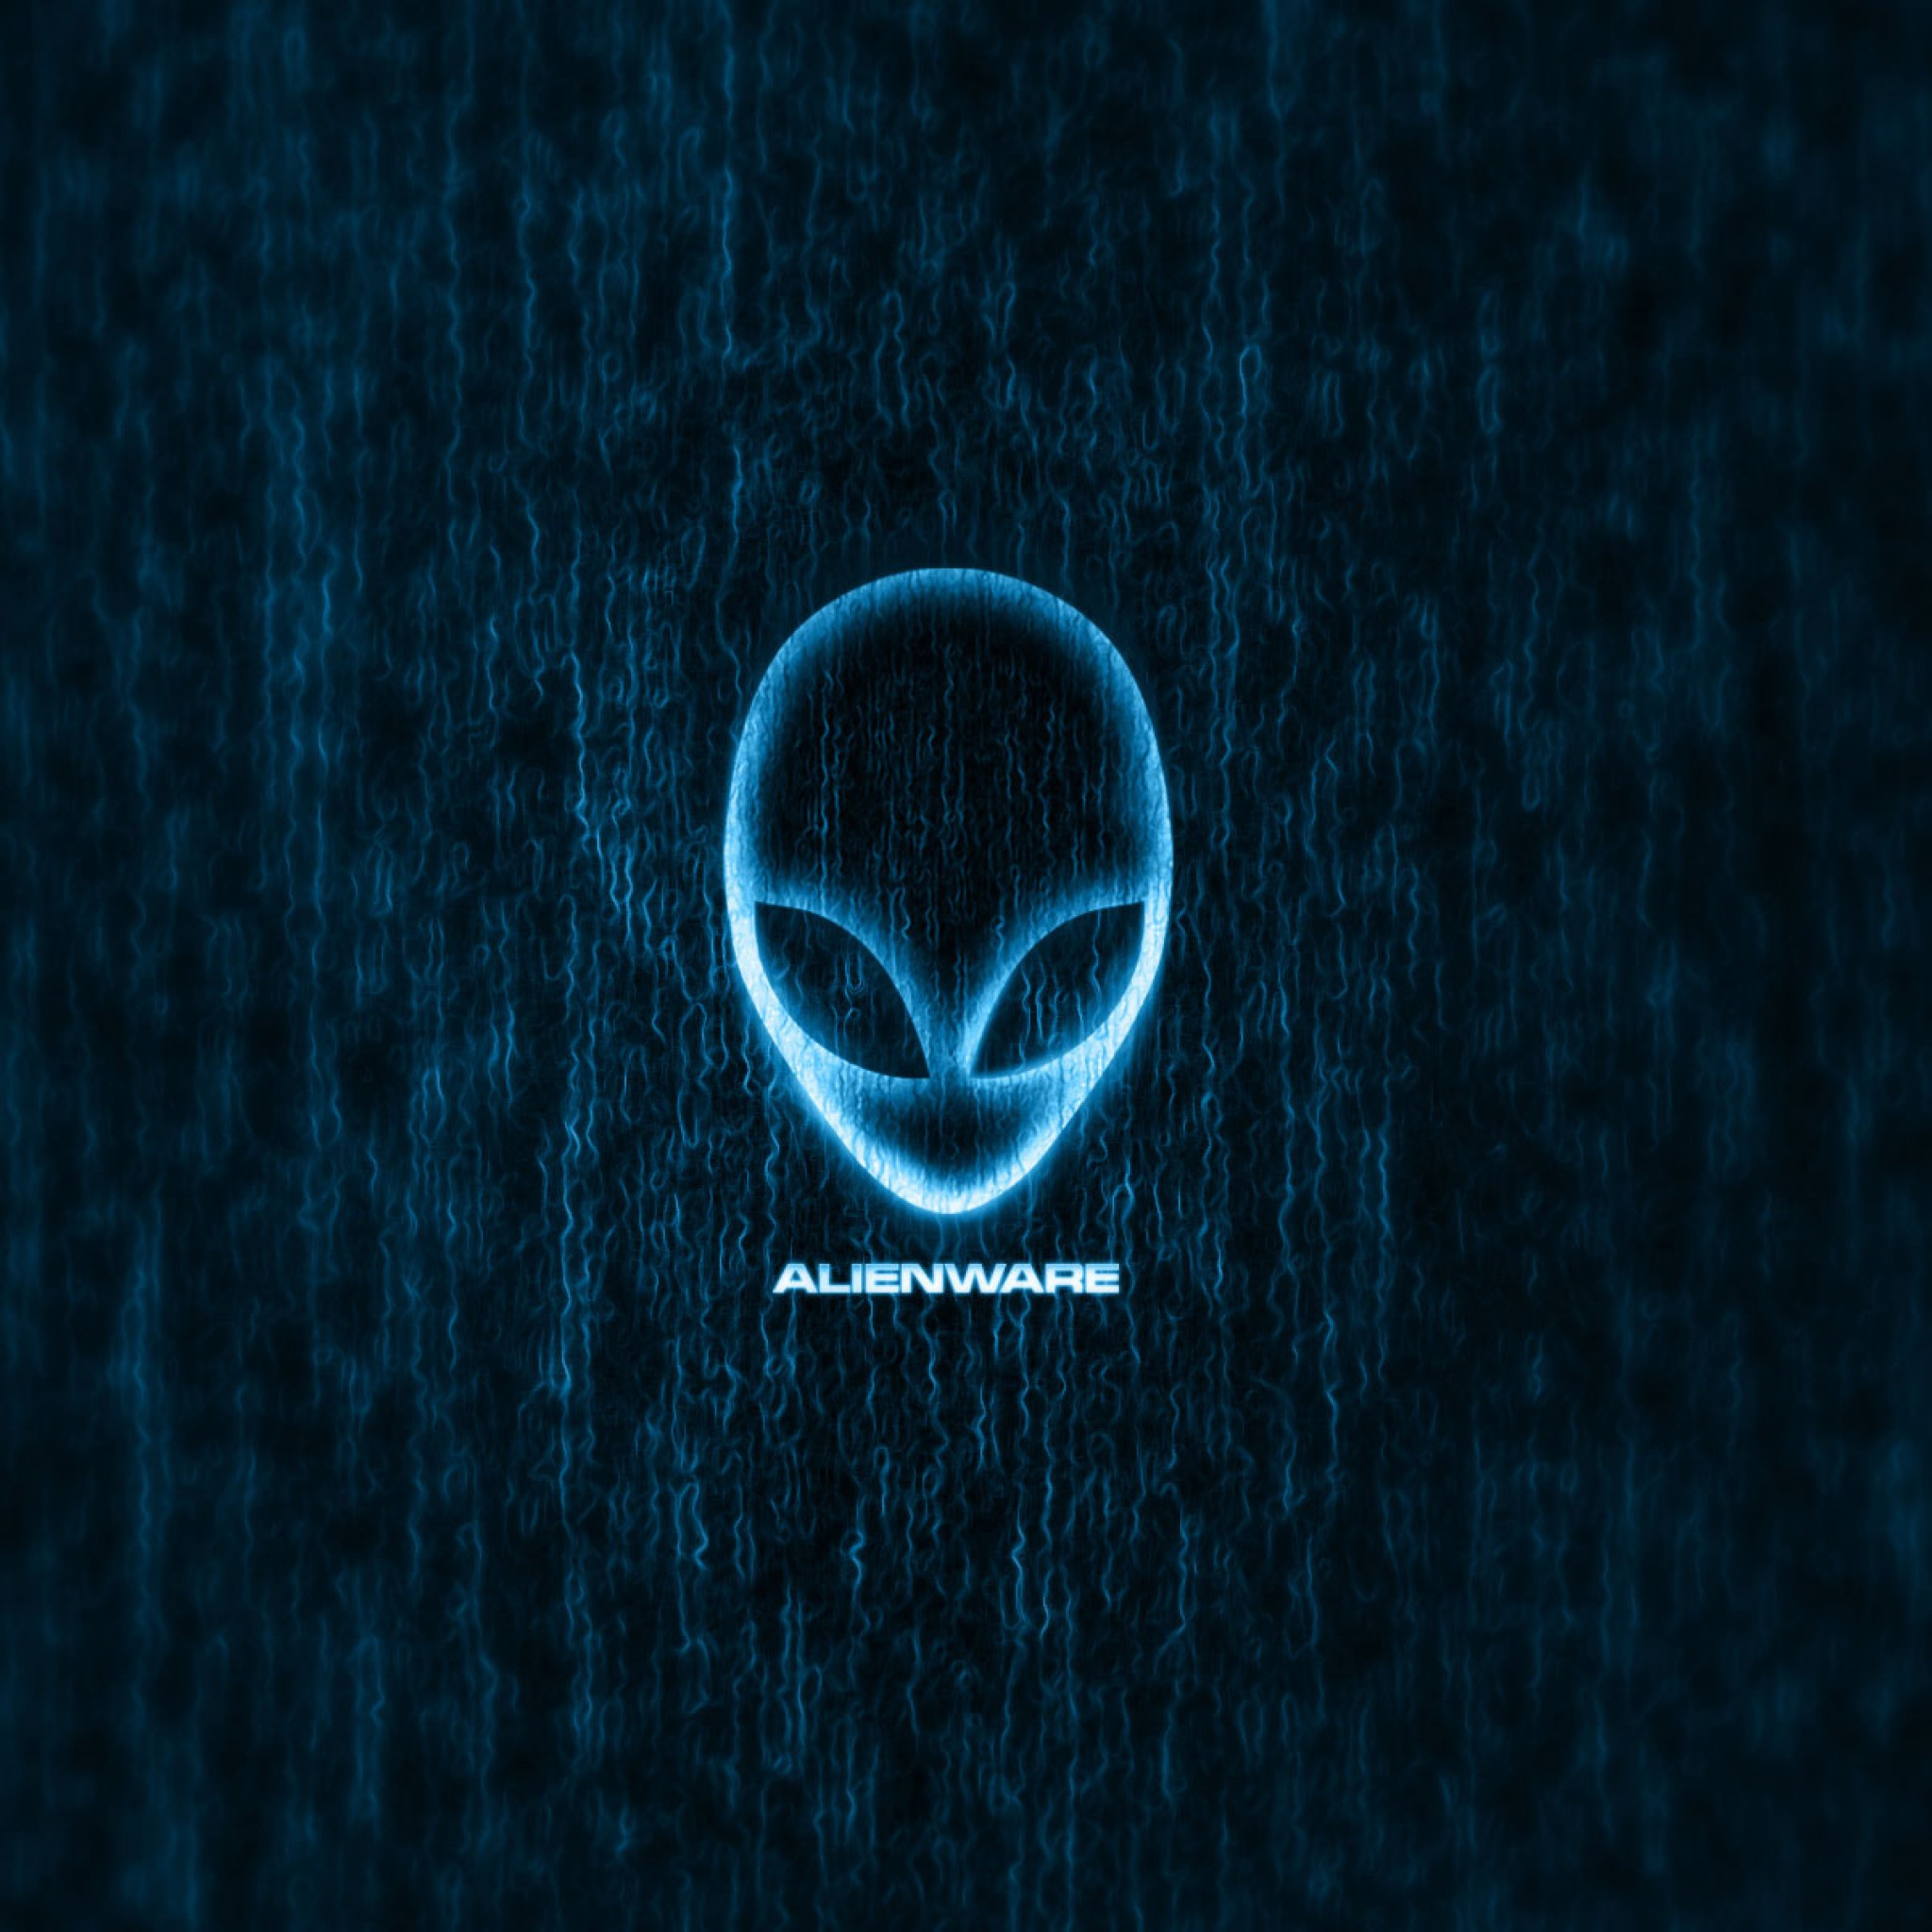 49 Alienware Live Wallpaper For Pc On Wallpapersafari